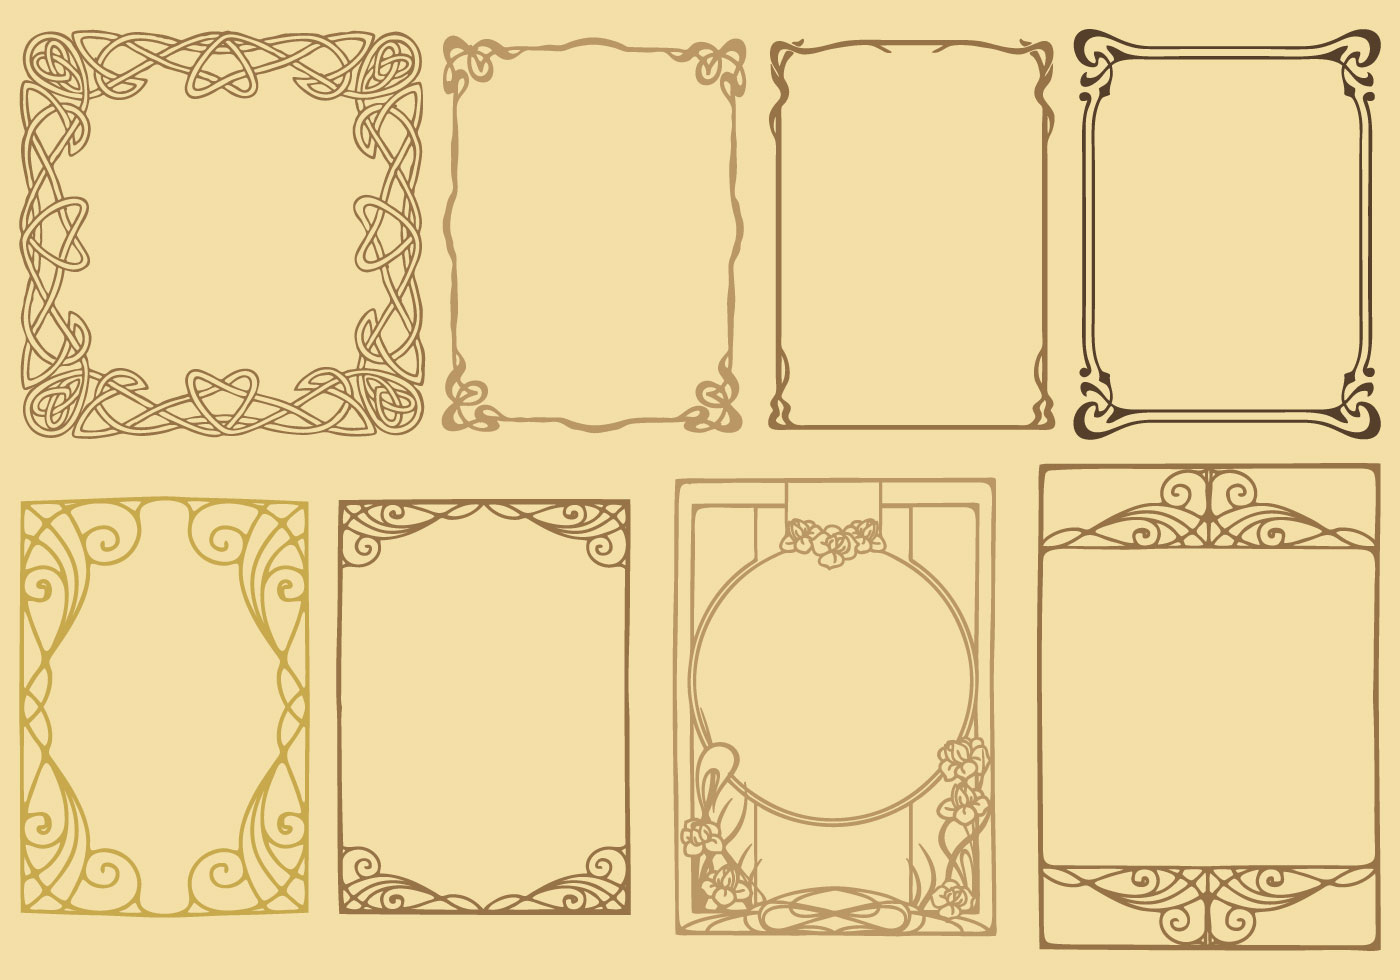 Art Nouveau Frame Vectors Retro Vintage Typographic Design Elements